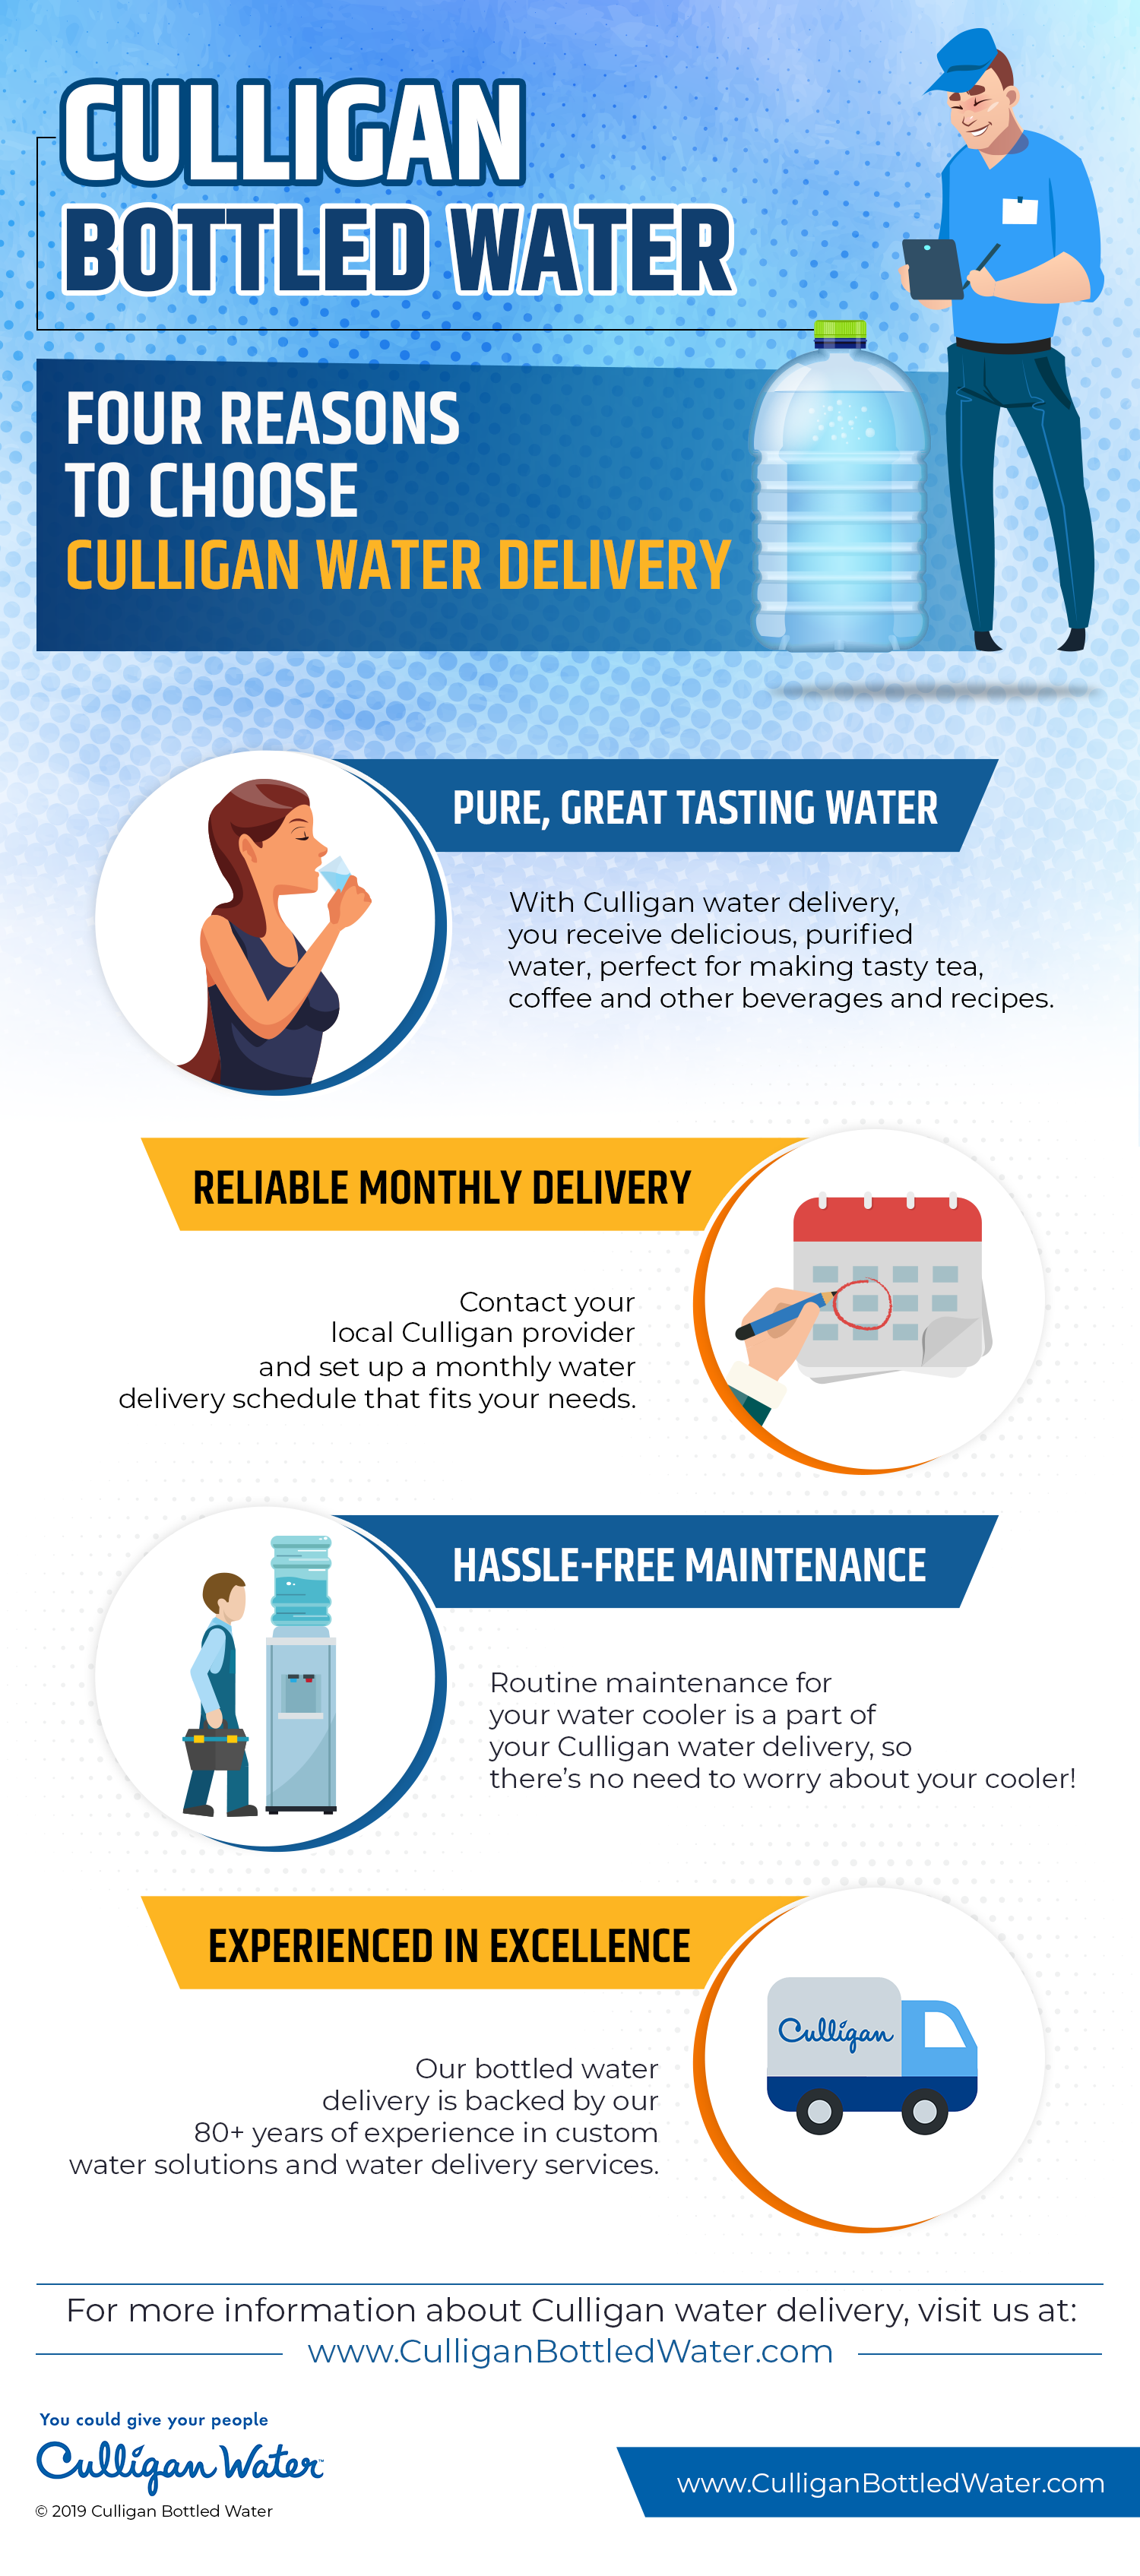 Four Reasons To Choose Culligan Water Delivery Bottled Water Delivery Water Delivery Service Water Delivery